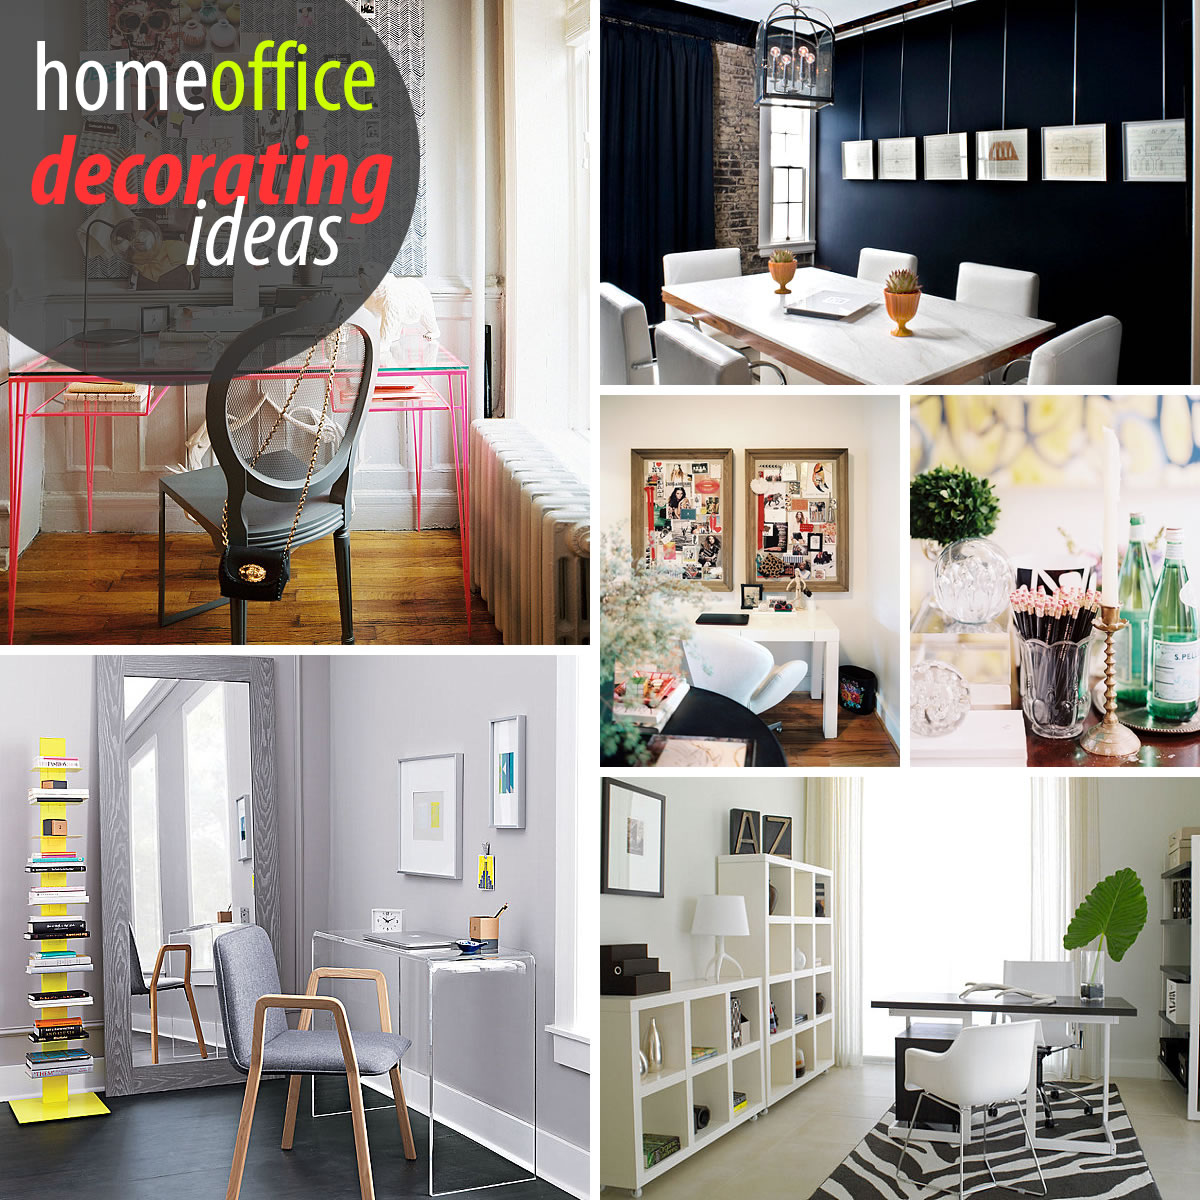 Home Office Designs Living Room Decorating Ideas: Creative Home Office Decorating Ideas